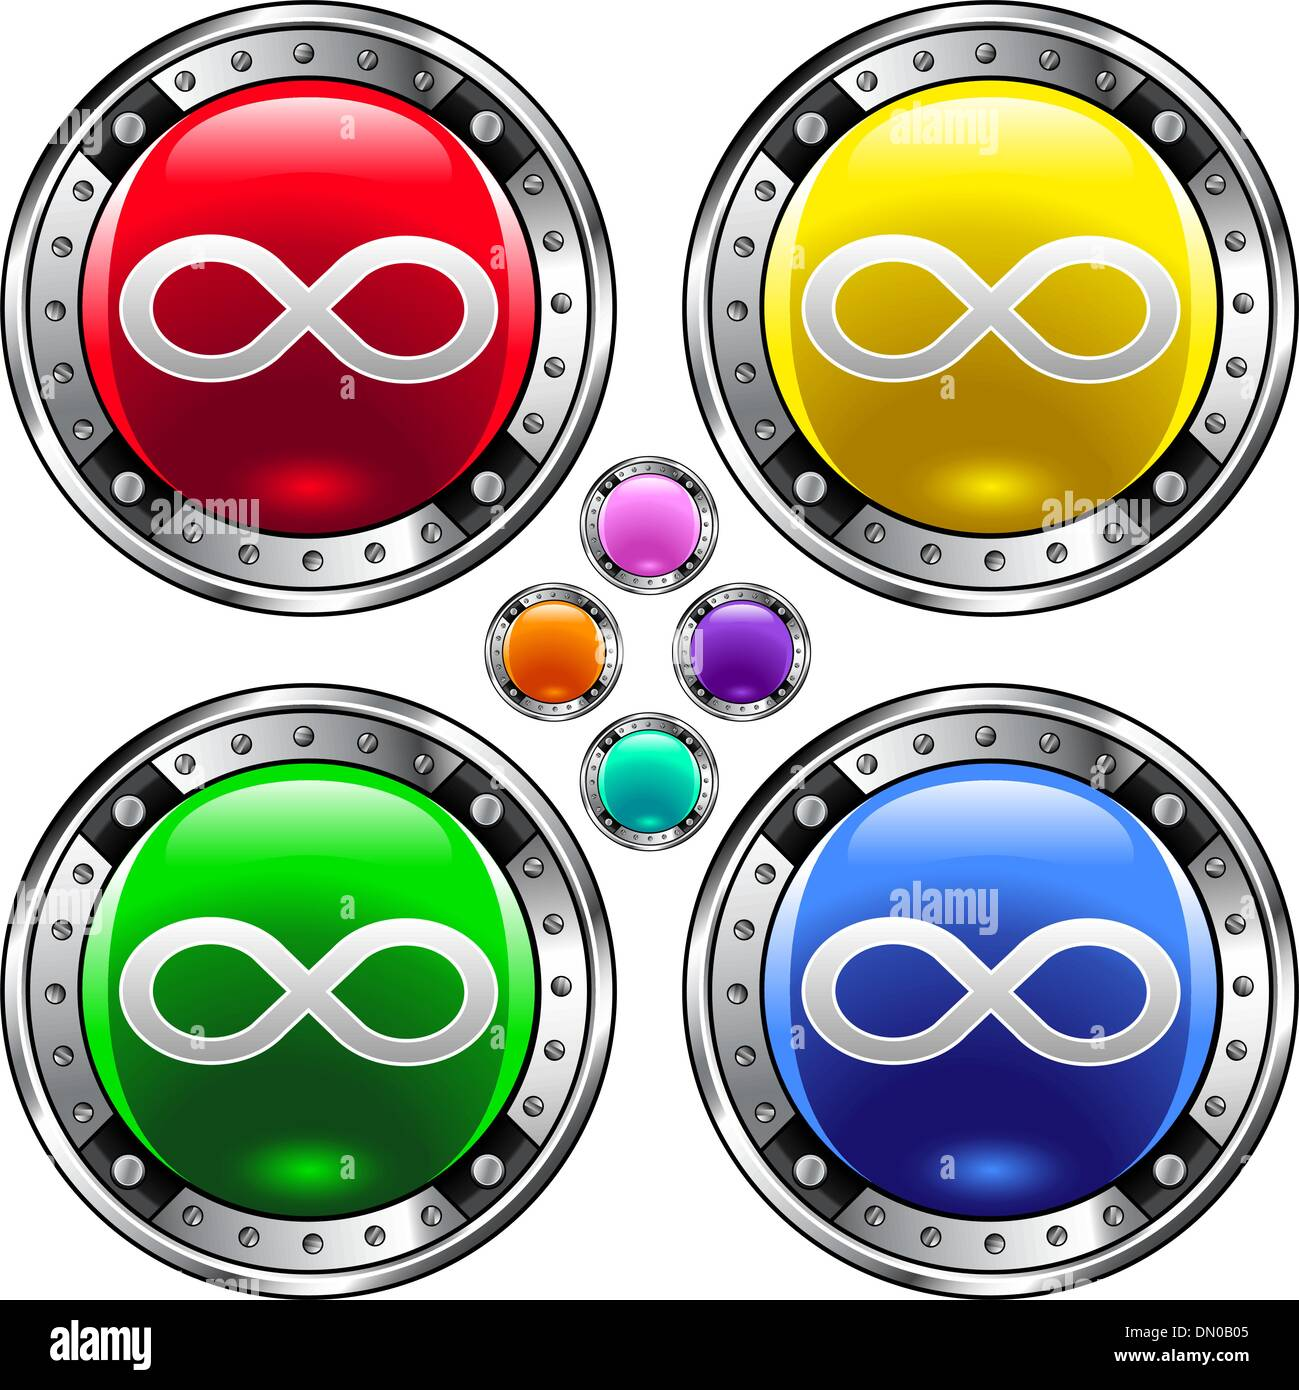 Infinity symbol colorful button stock vector art illustration infinity symbol colorful button biocorpaavc Gallery